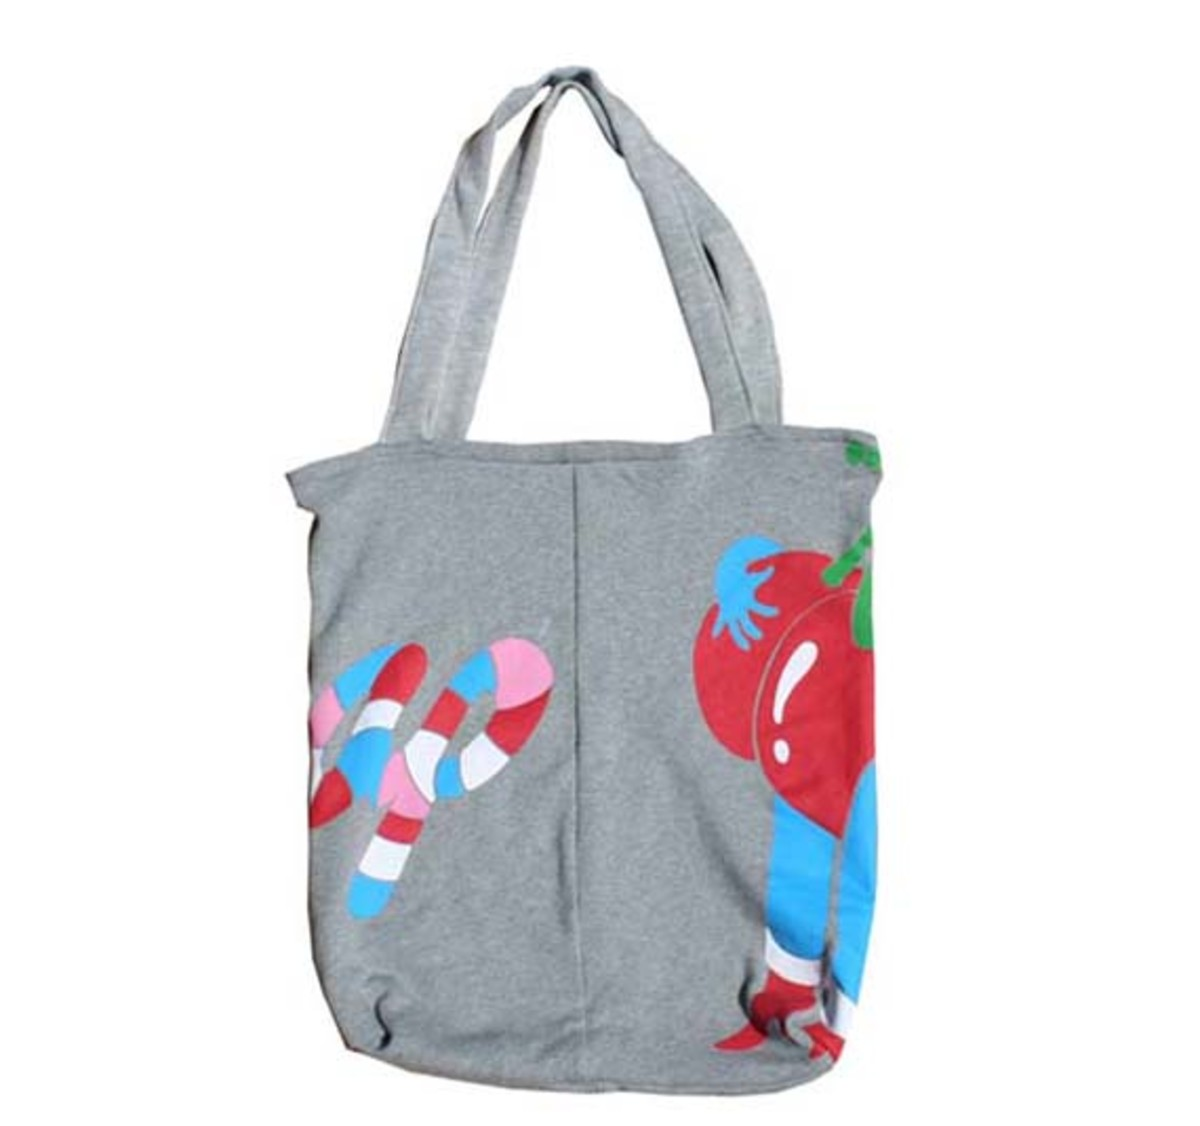 rockwell-summer10-bags-3